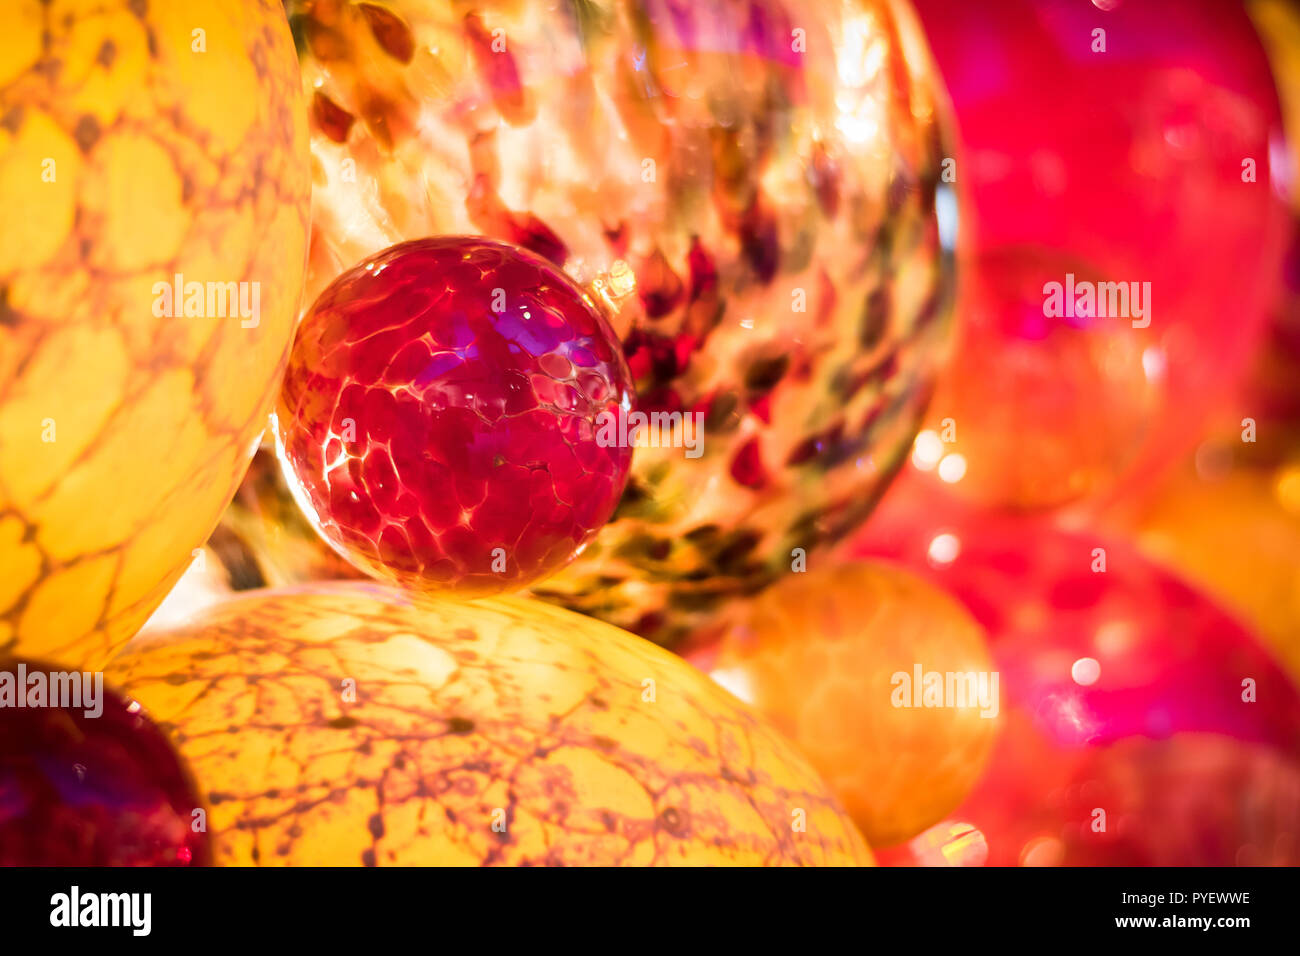 Lovely Christmas greeting card background. Glass hand painted Christmas tree balls that is found in valletta Malta. Bright red and Yellow balls decora - Stock Image